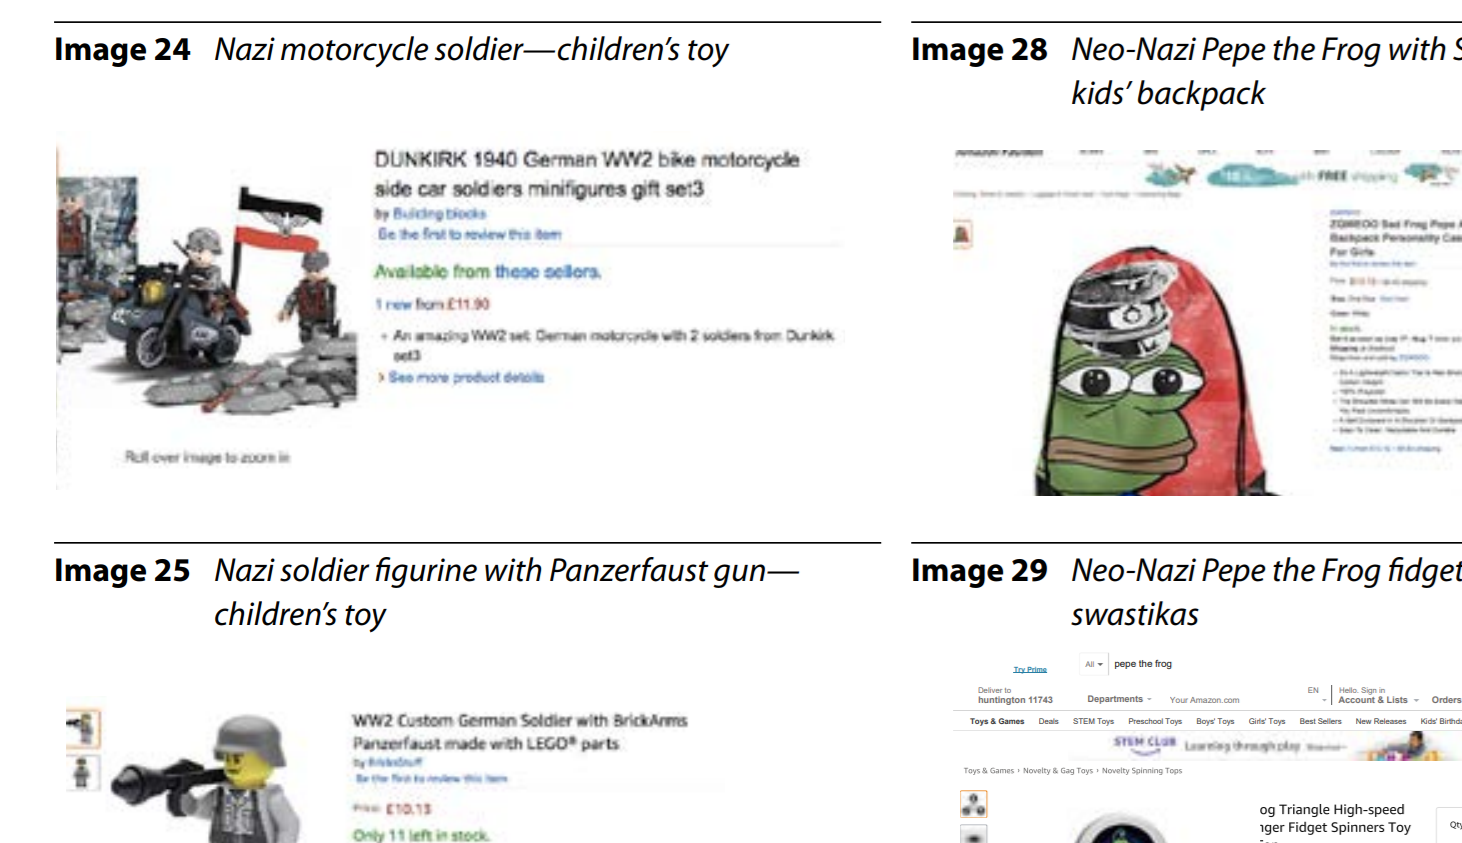 Children's products featuring white supremacist imagery were found for sale on Amazon, which collects a commission from those sales.